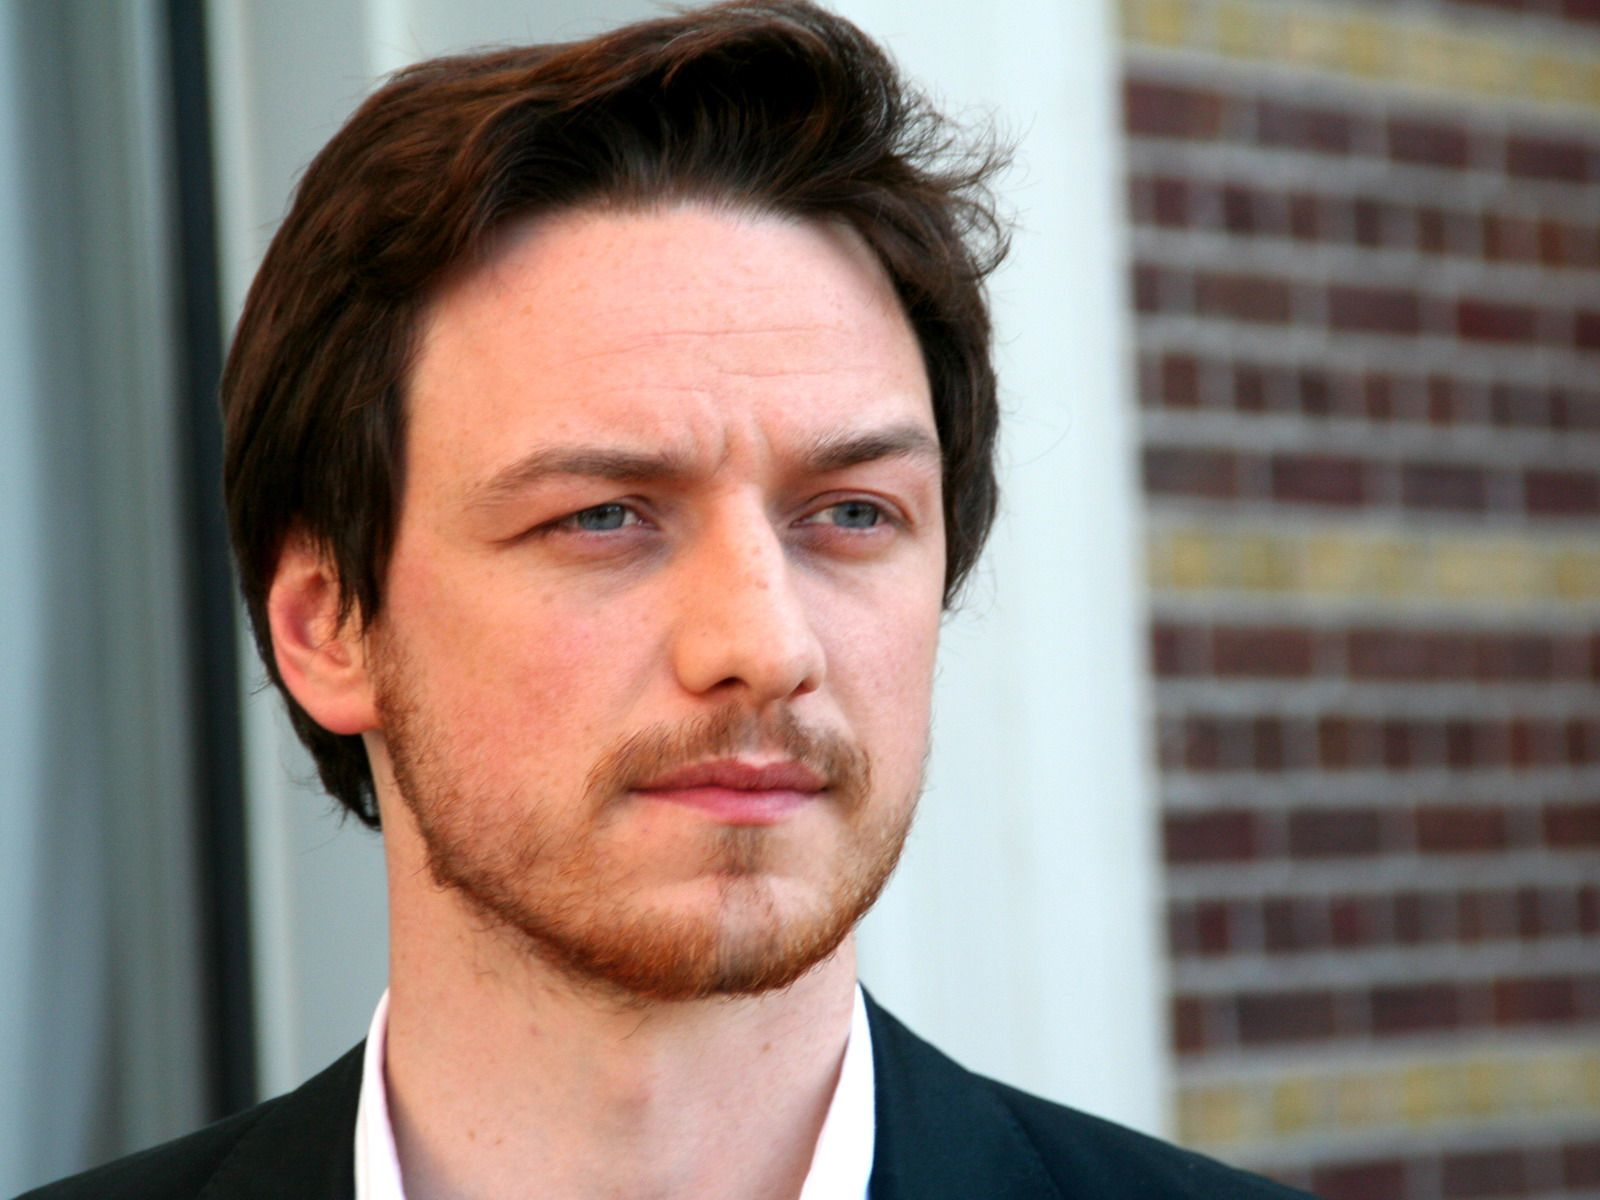 17 Best images about James McAvoy on Pinterest | Becoming jane ...